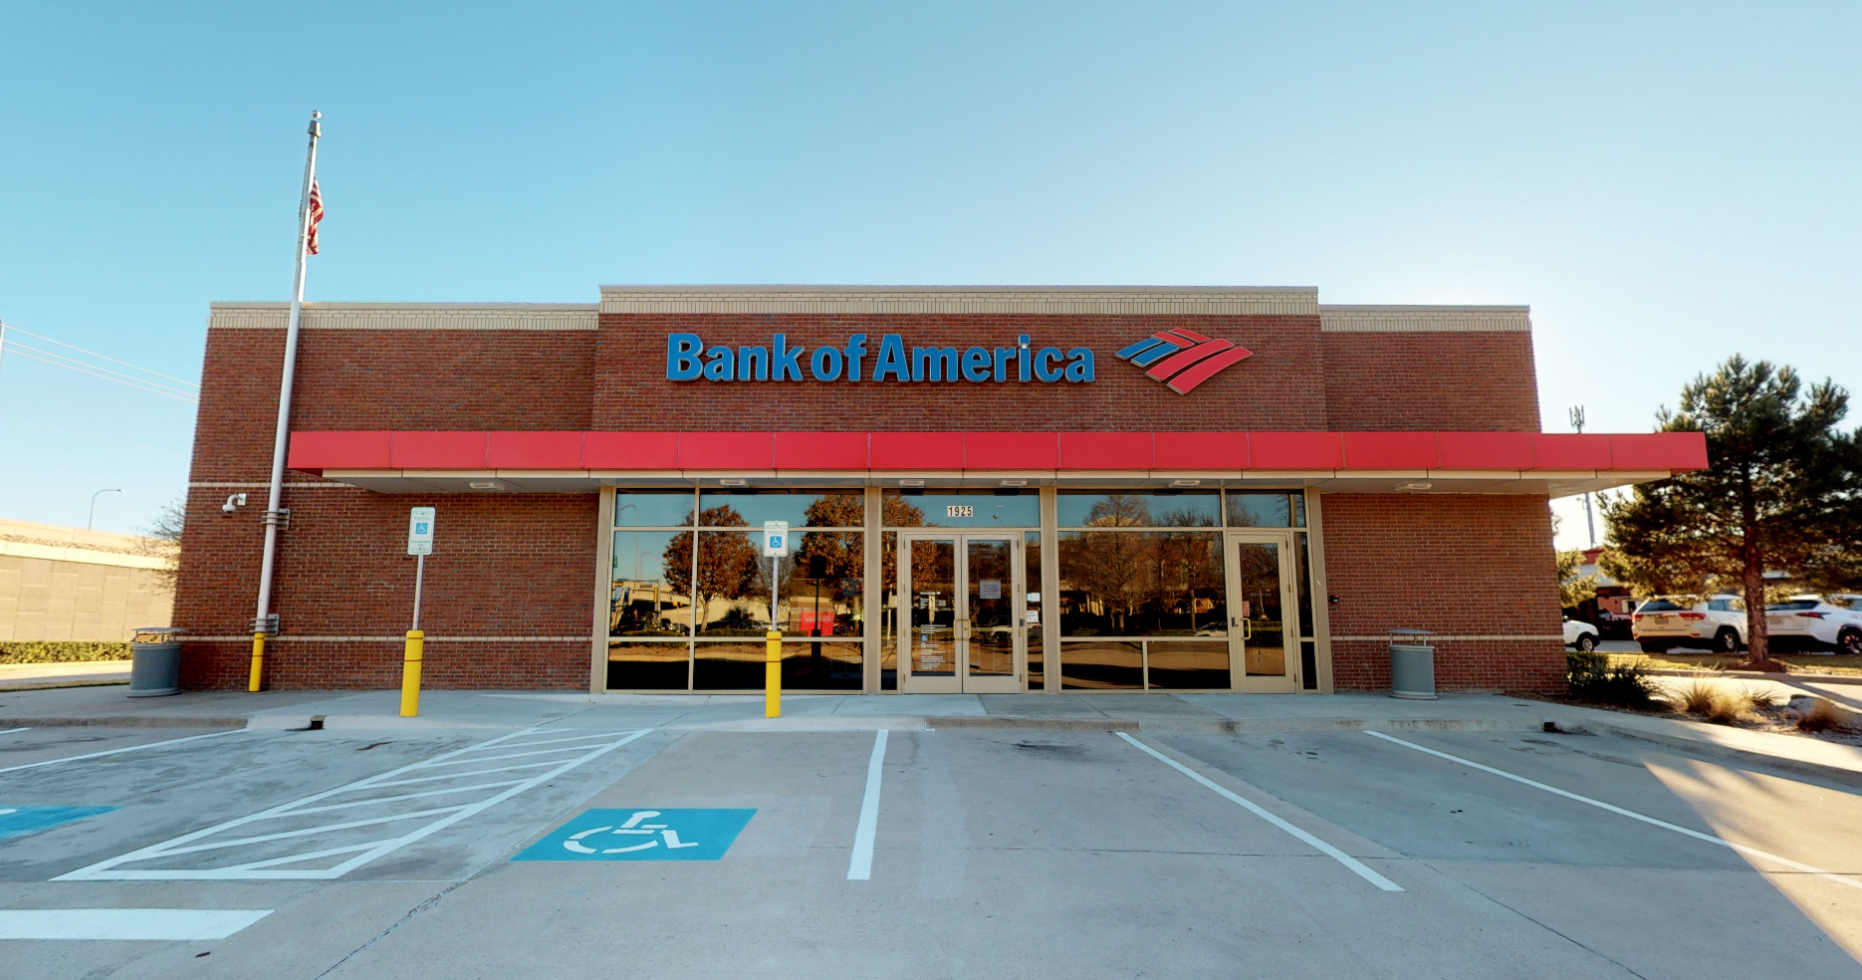 Bank of America financial center with drive-thru ATM   1925 Dallas Pkwy, Plano, TX 75093